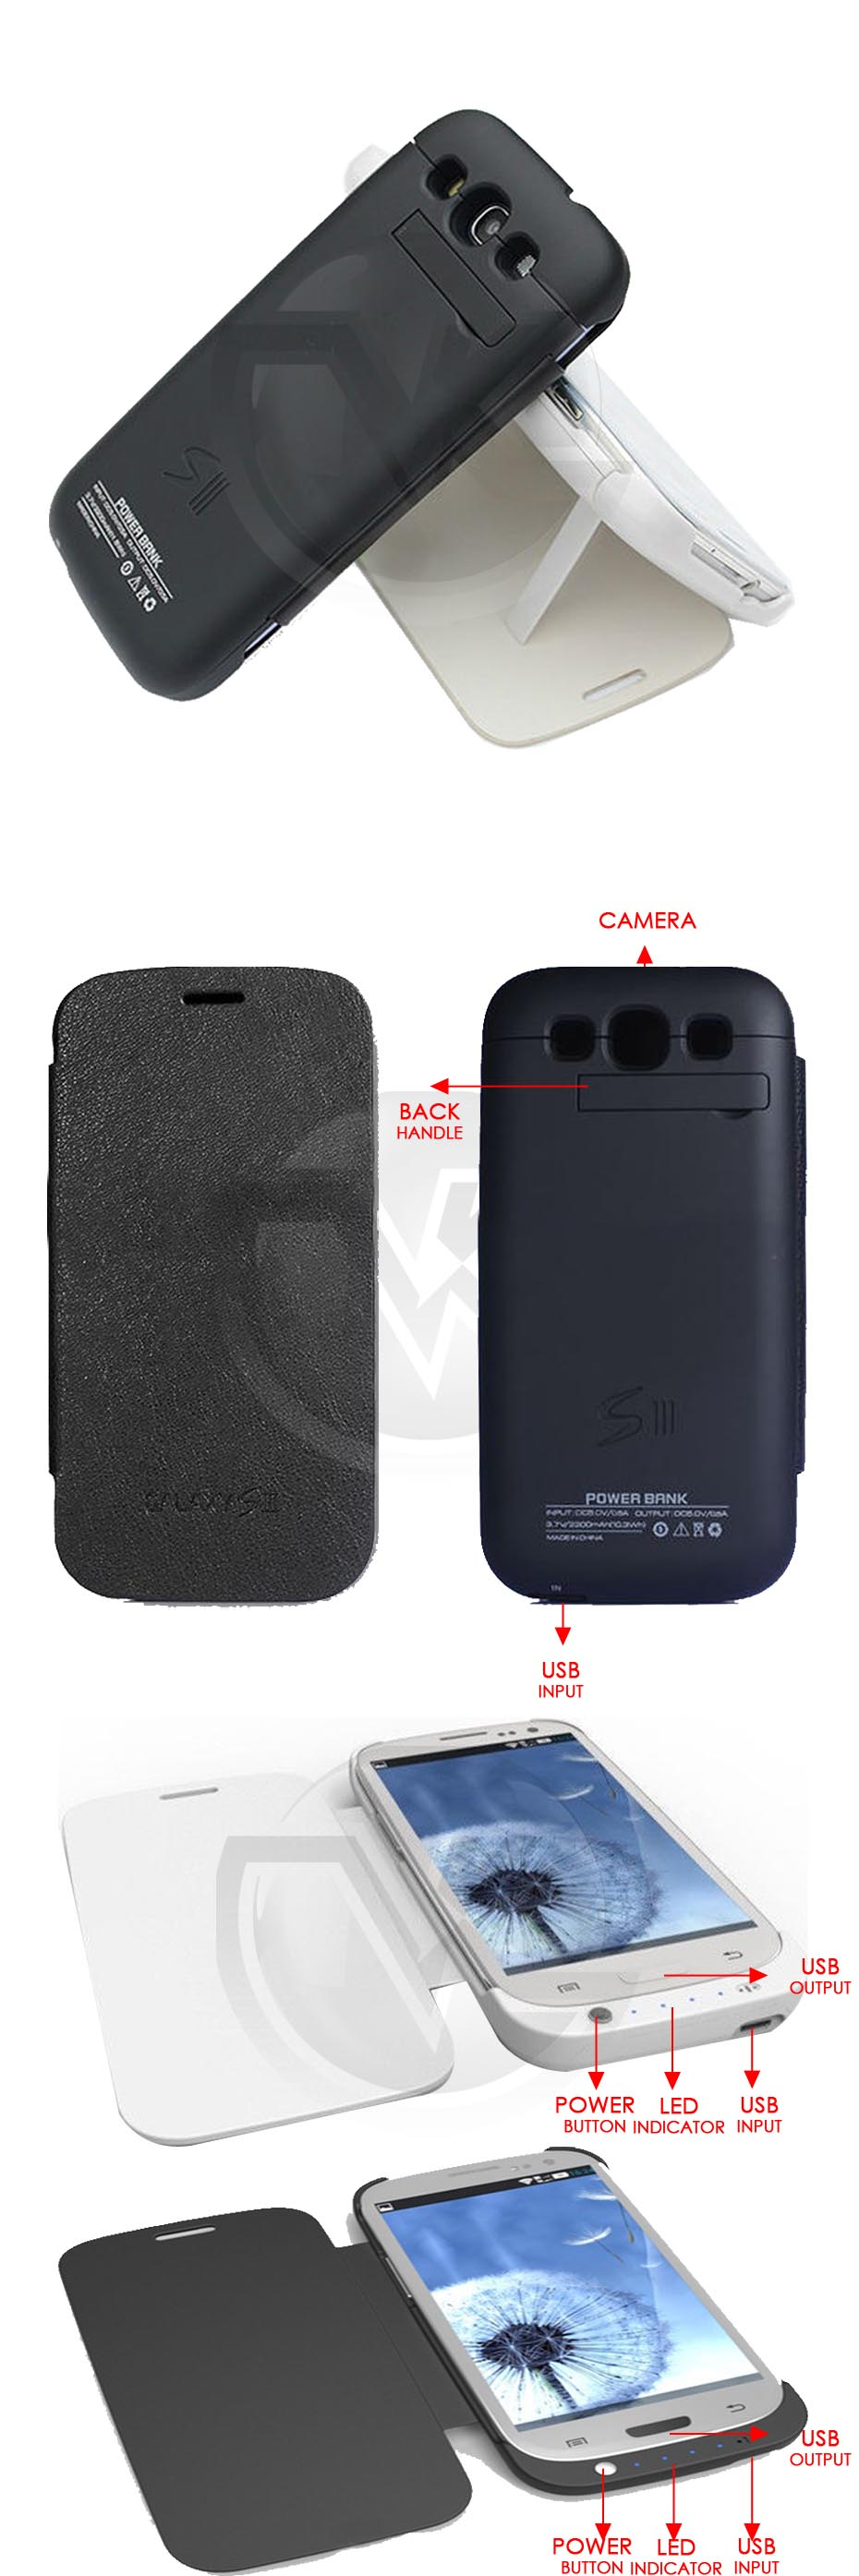 Power Case Flip Cover 3200mAh For Samsung S3 I9300 Overview